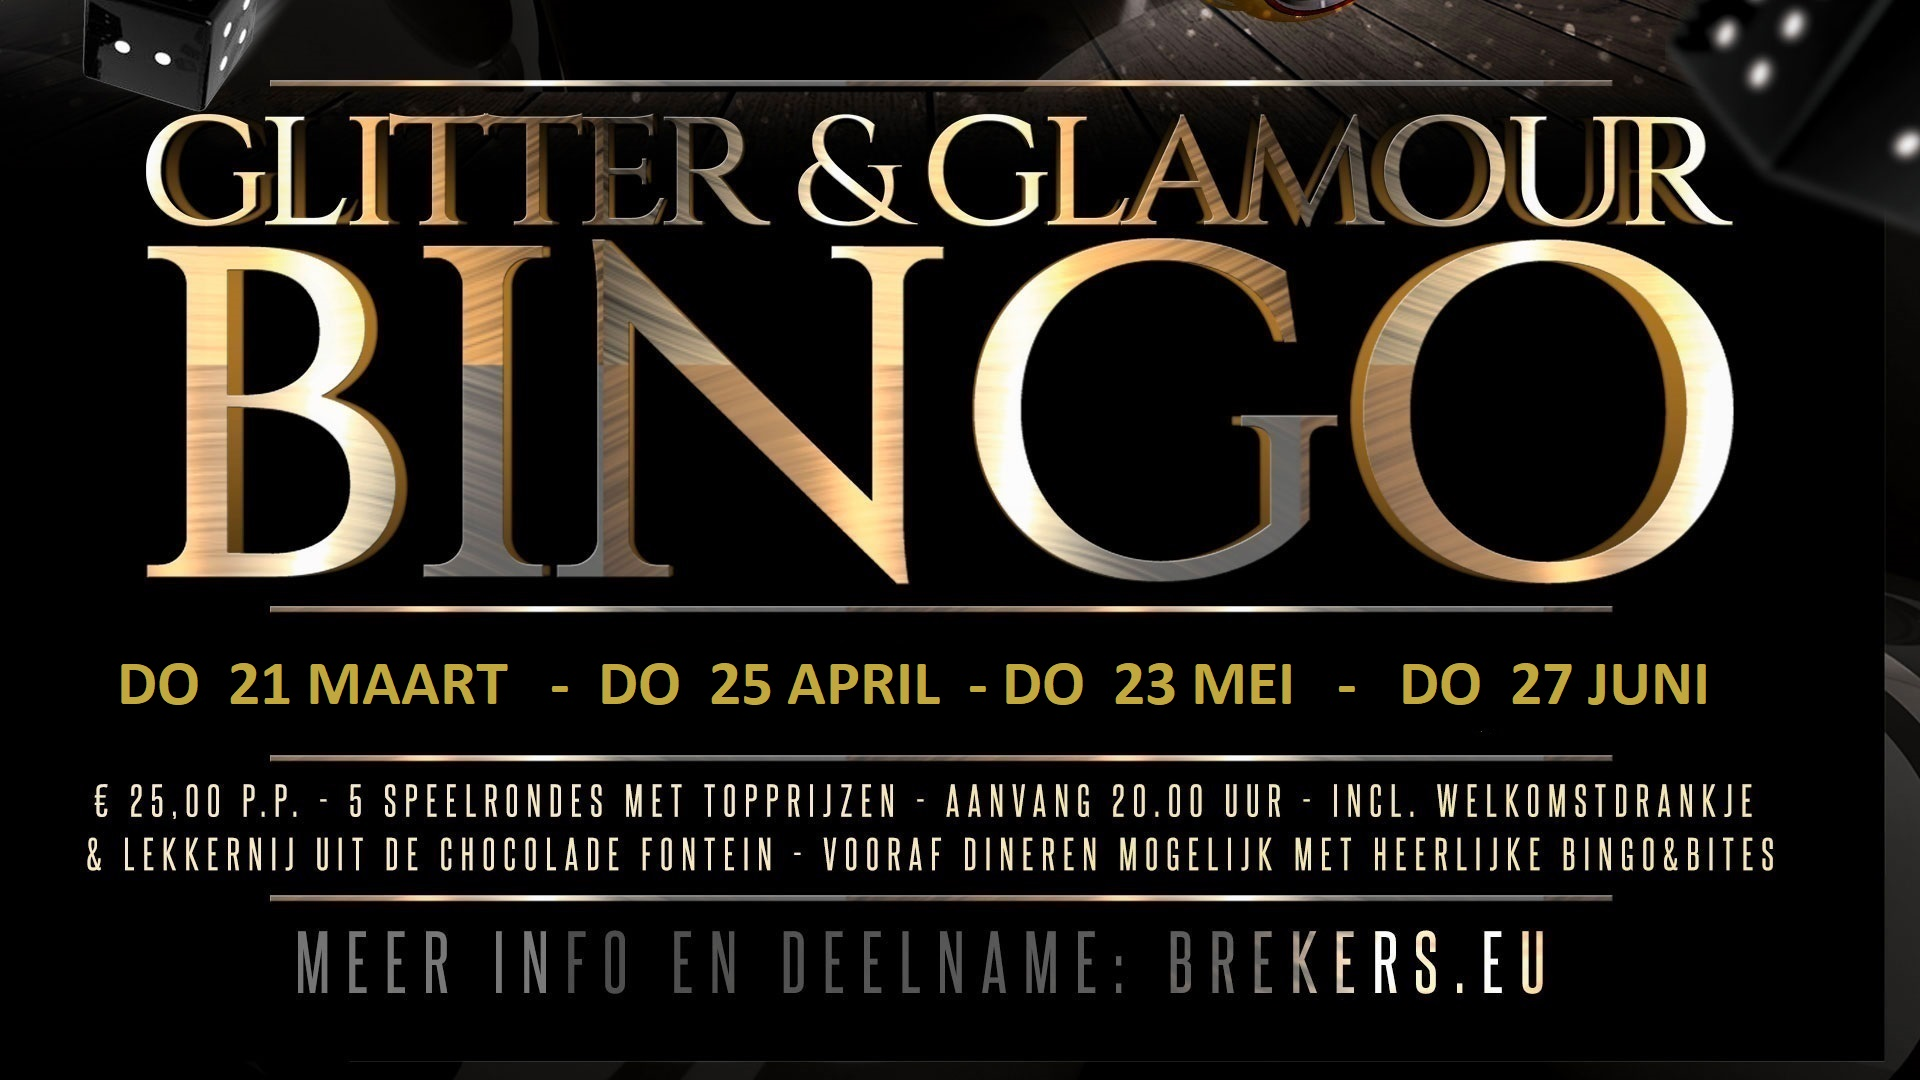 Glitter & Glamour Bingo 25 april